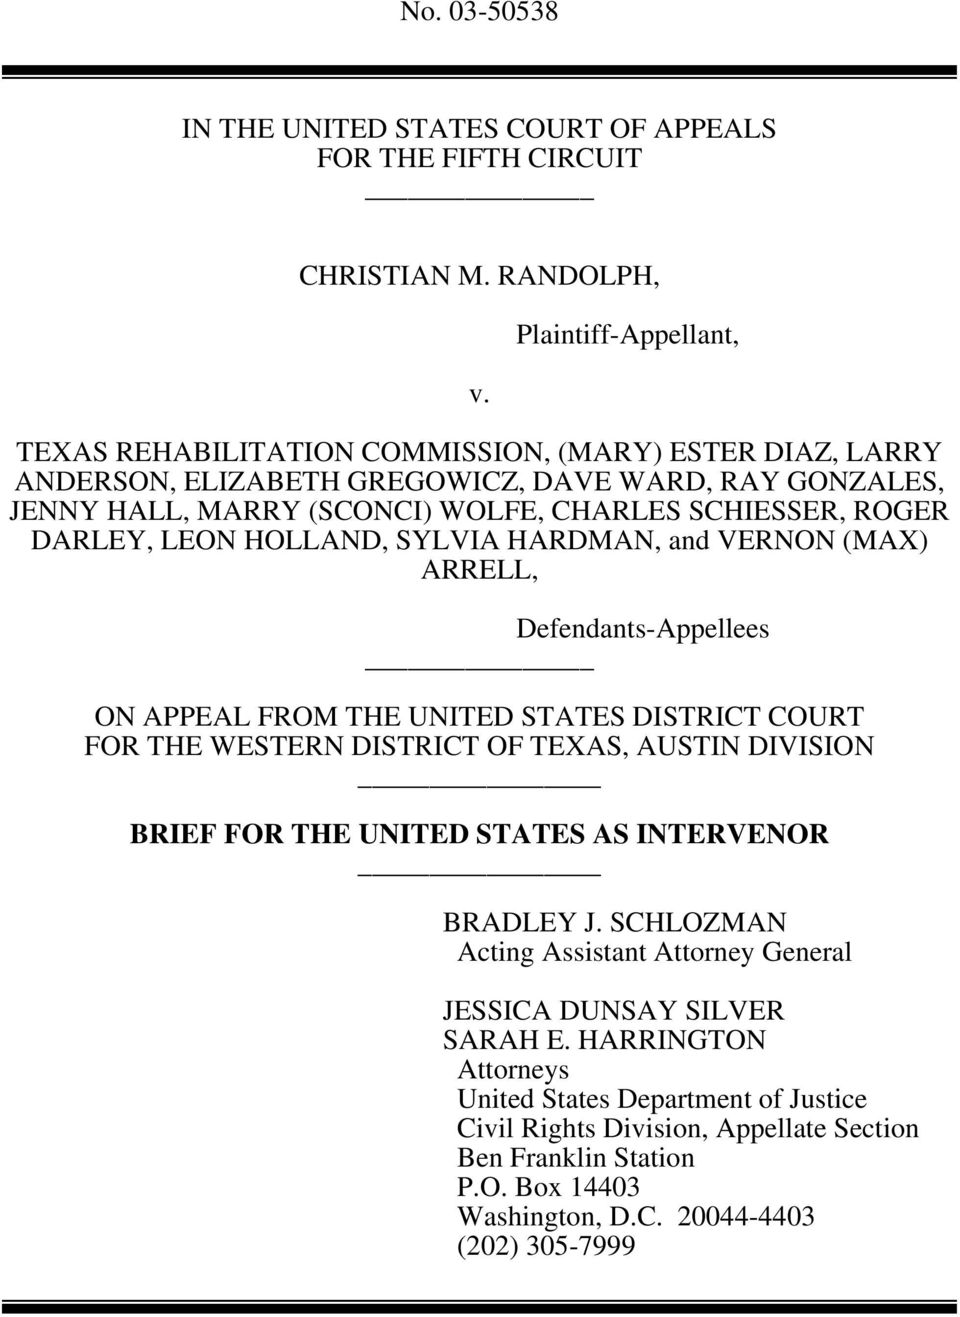 DARLEY, LEON HOLLAND, SYLVIA HARDMAN, and VERNON (MAX) ARRELL, Defendants-Appellees ON APPEAL FROM THE UNITED STATES DISTRICT COURT FOR THE WESTERN DISTRICT OF TEXAS, AUSTIN DIVISION BRIEF FOR